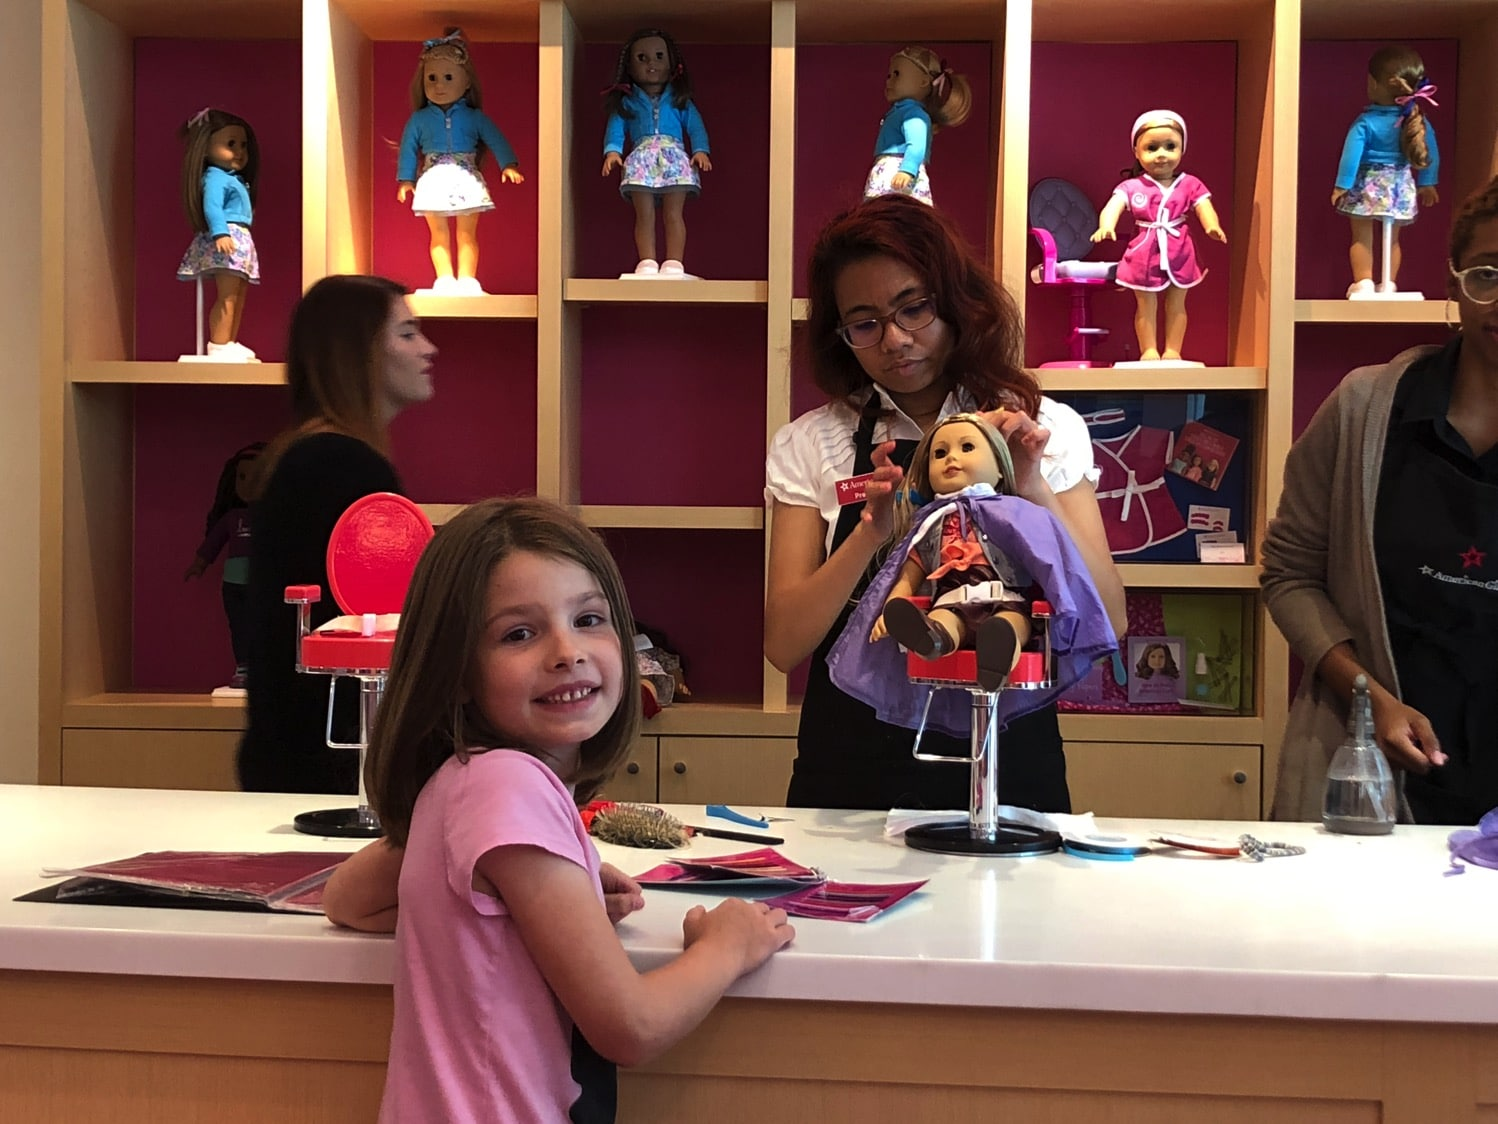 american girl hair styling at the doll hair salon